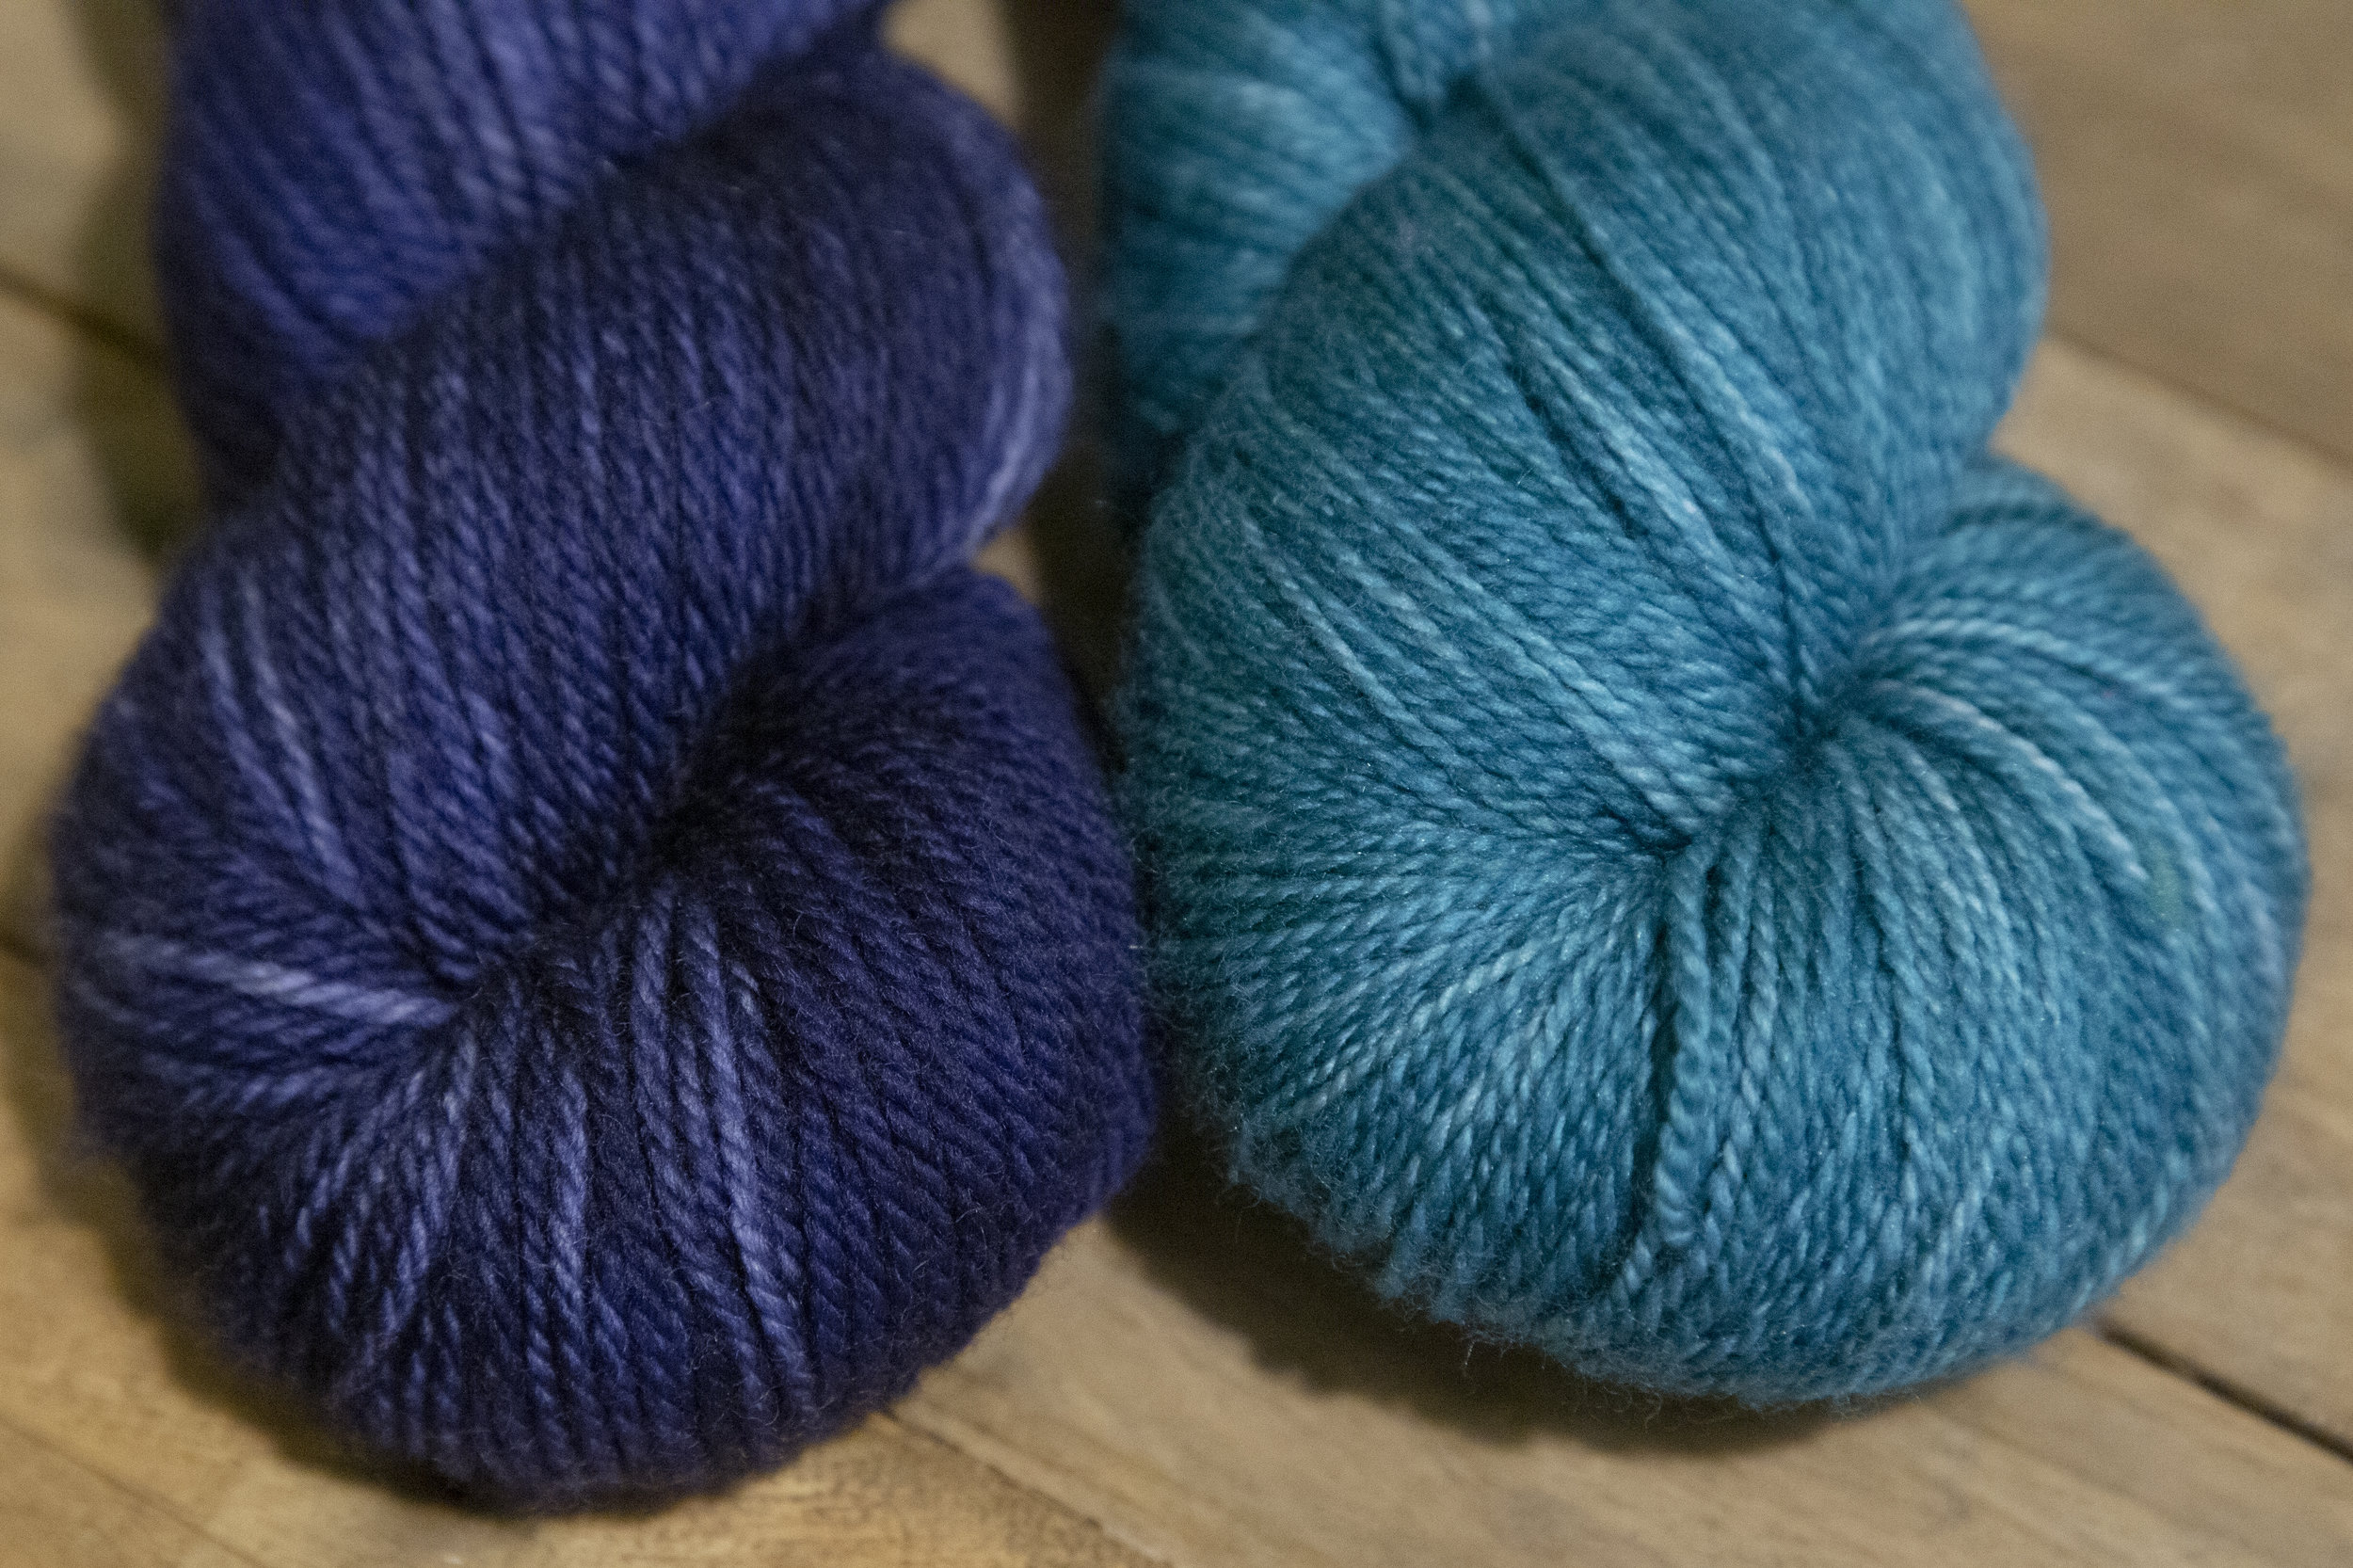 Two skeins of blue semi-solid yarn